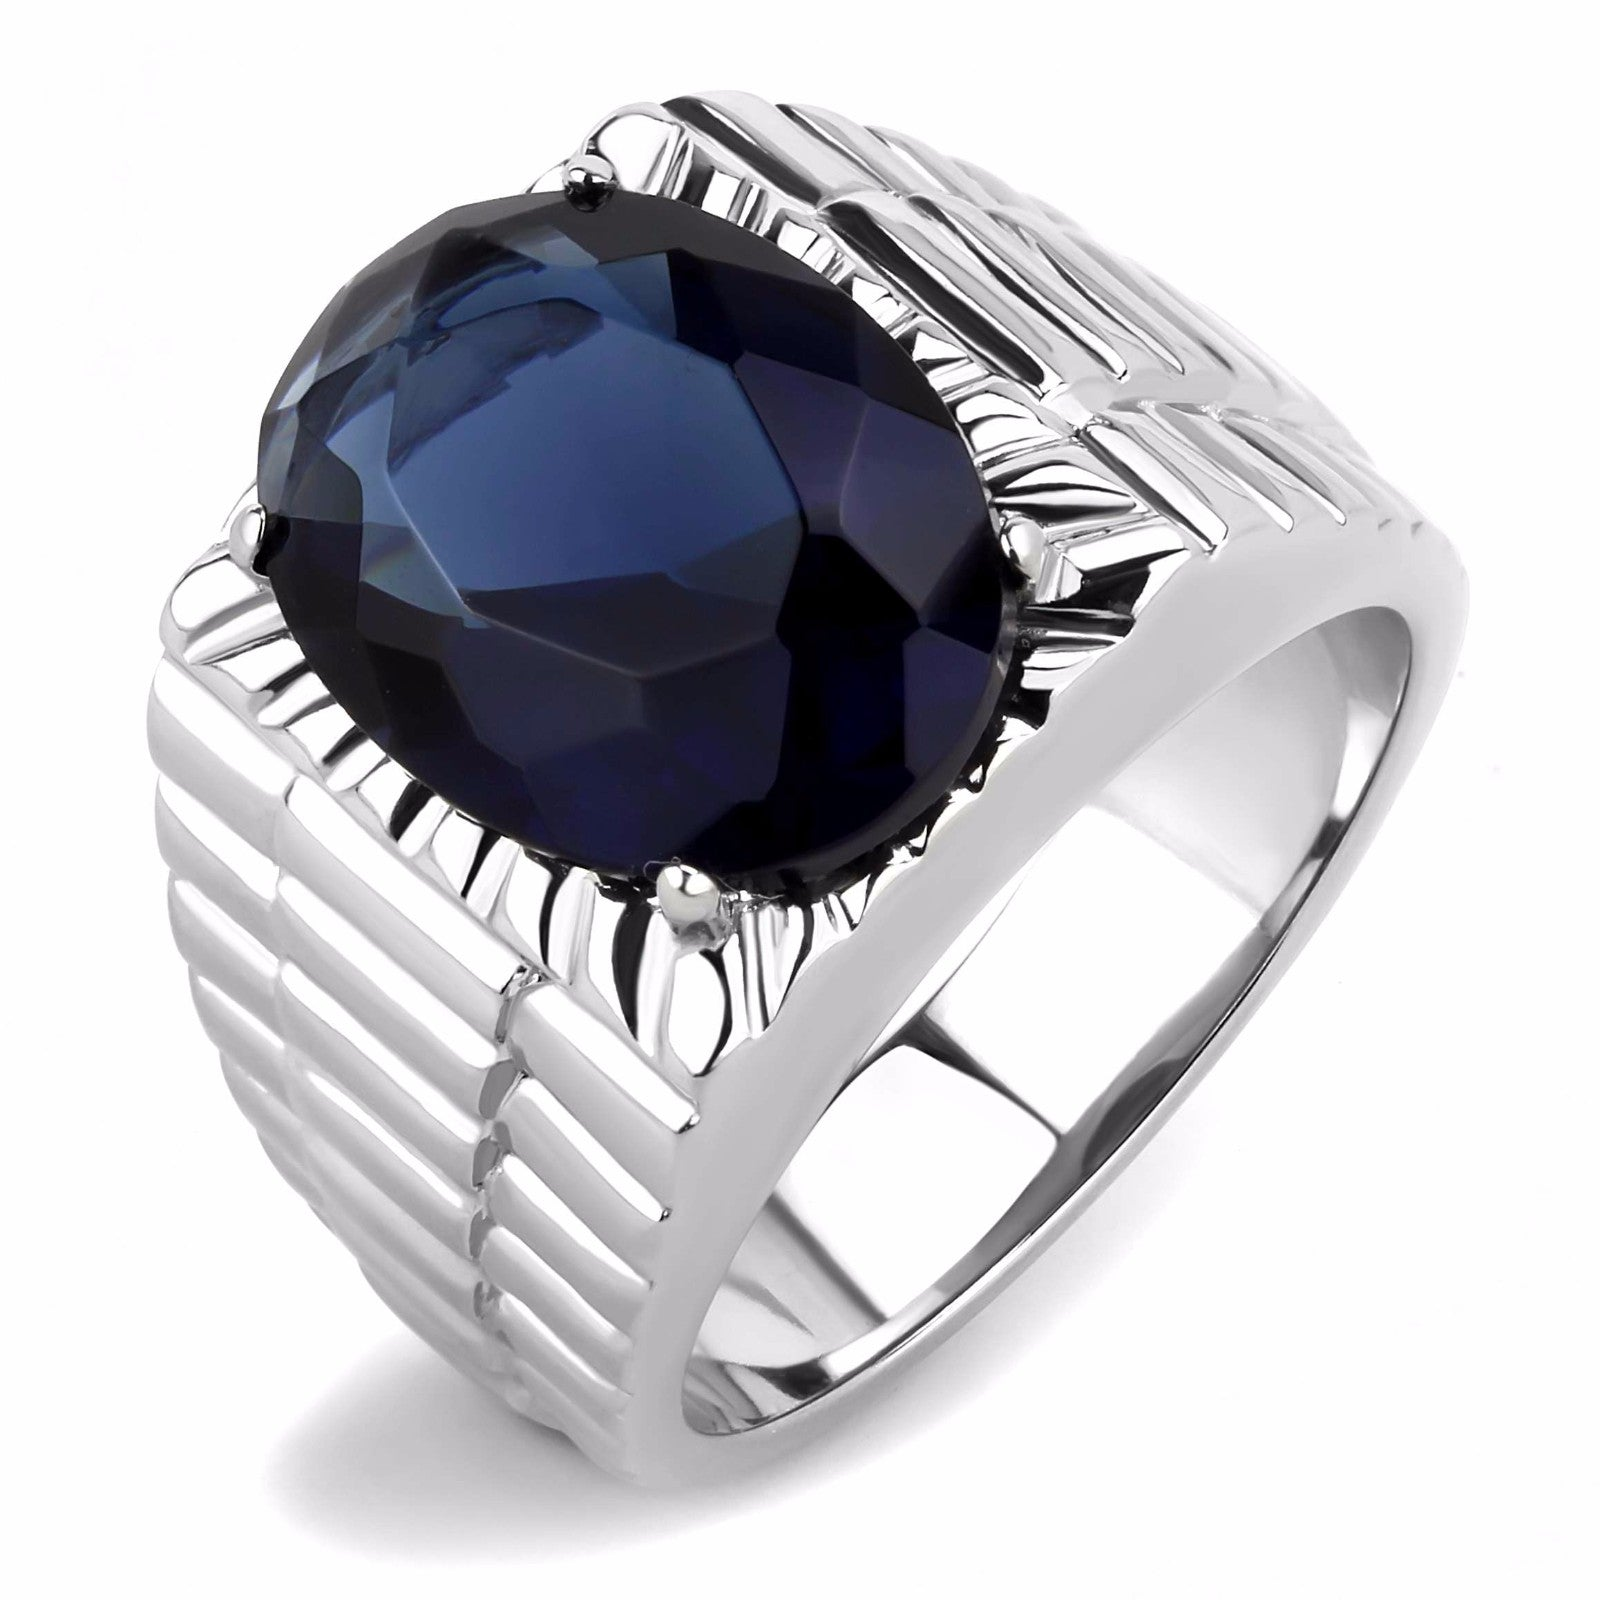 Big 16x12mm Oval Cut Deep Blue Sapphire CZ Solitaire Stainless Steel Mens Ring - LA NY Jewelry